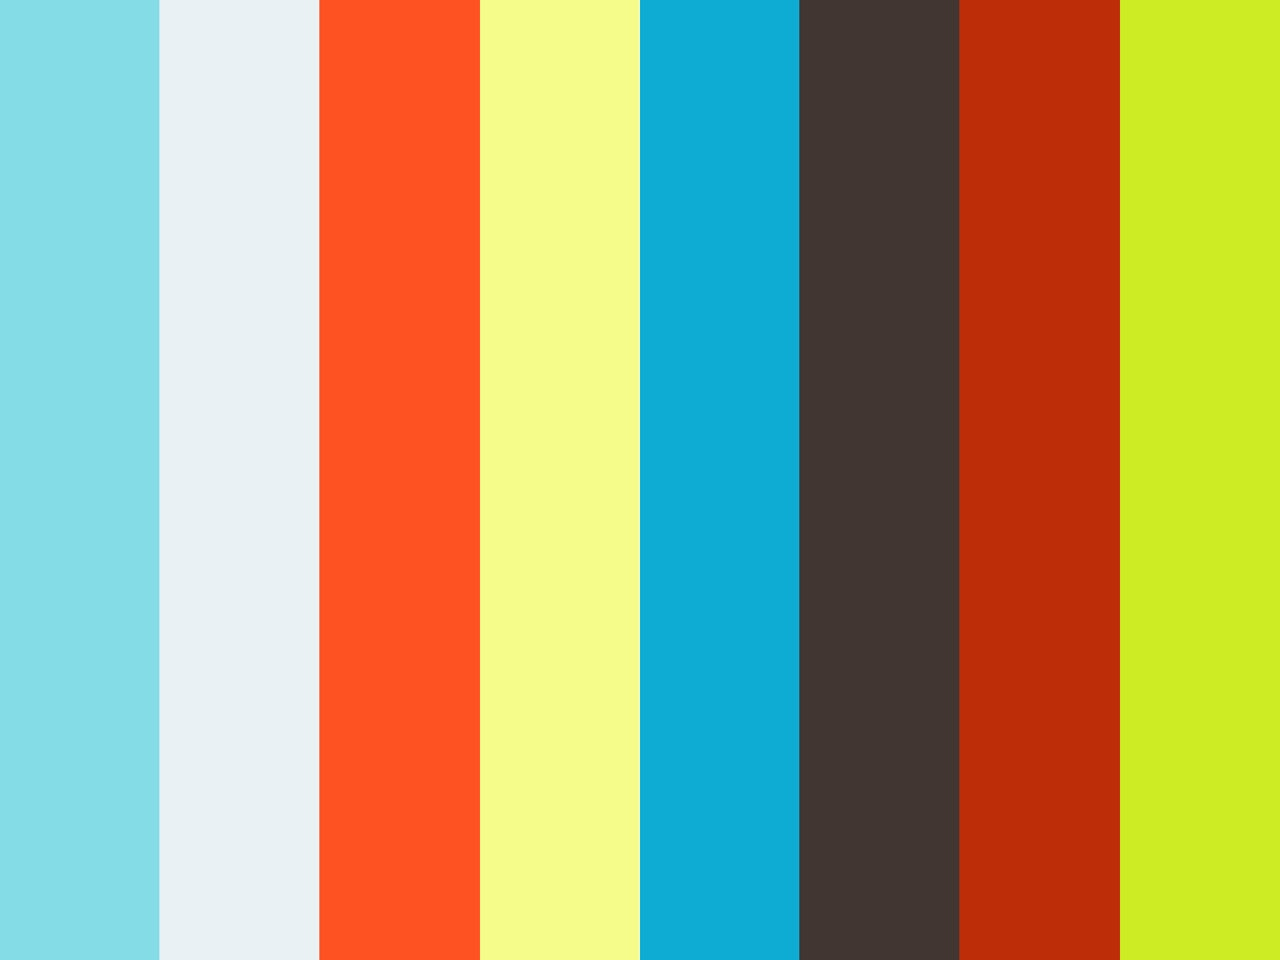 Kiteboarders in Cabarete